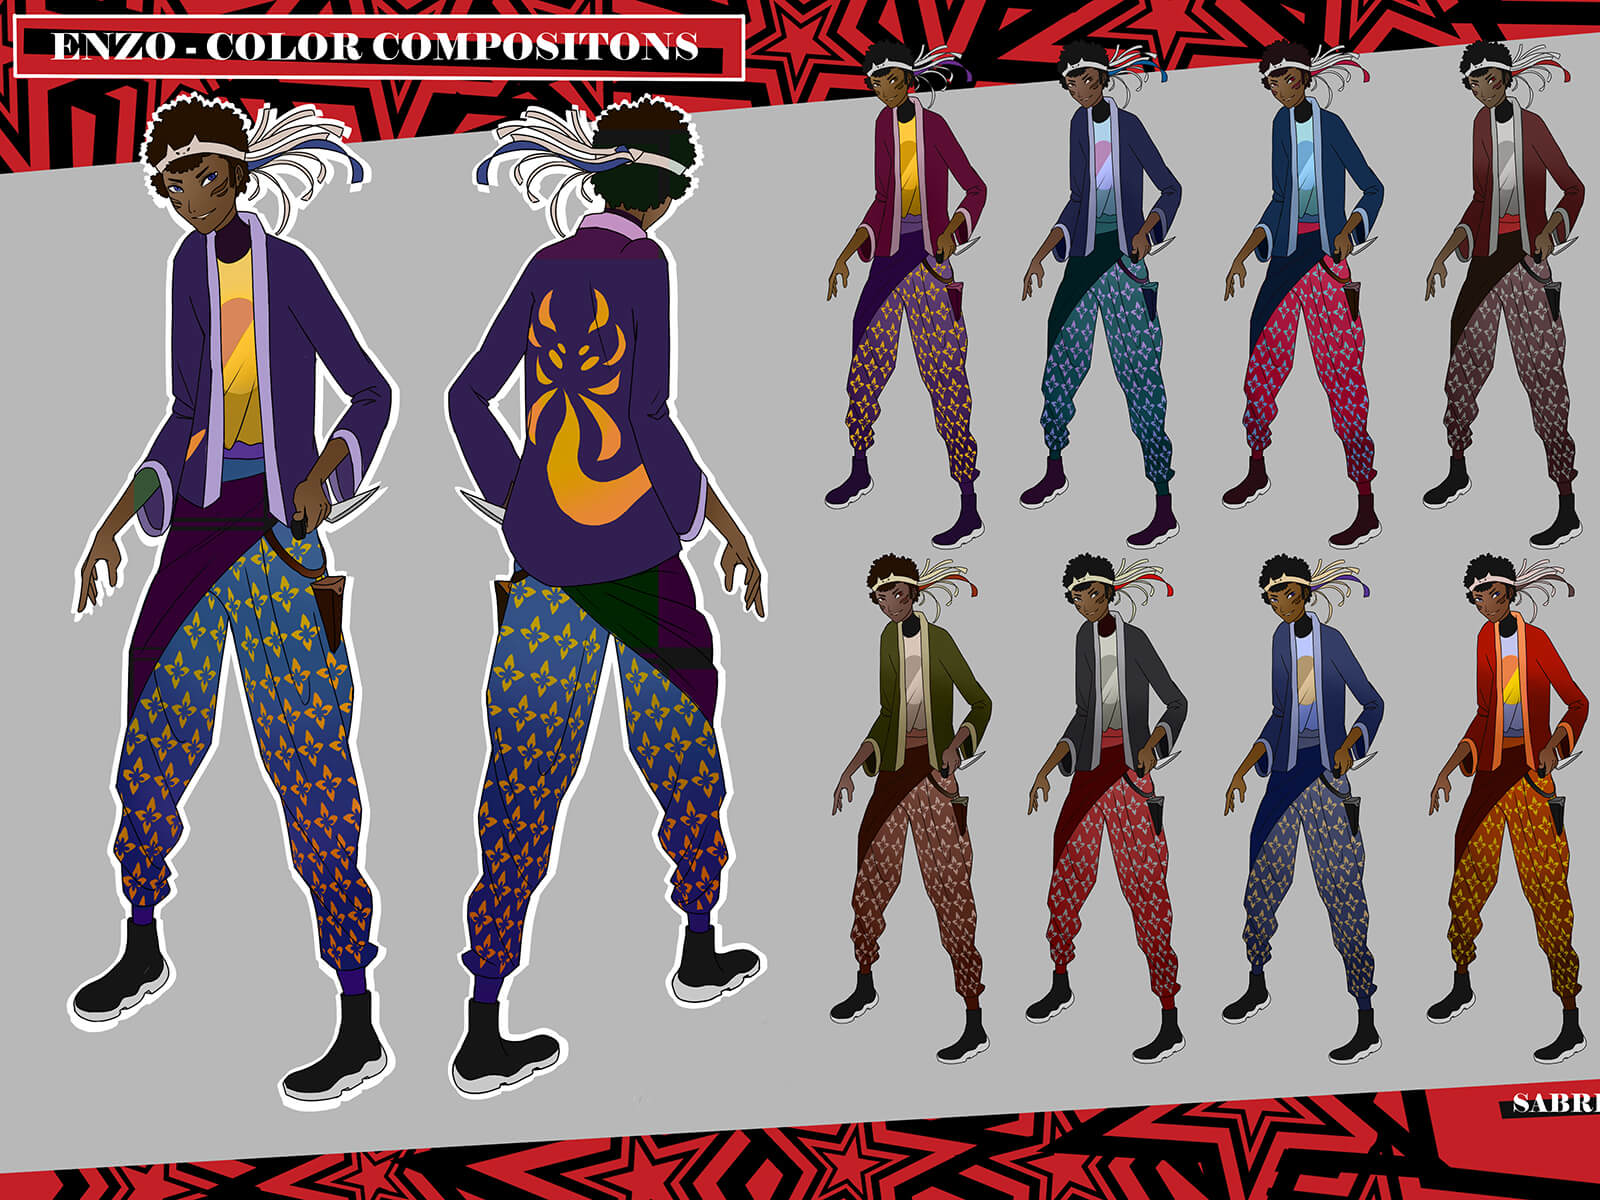 A character in a jacket and patterned pants in various colors